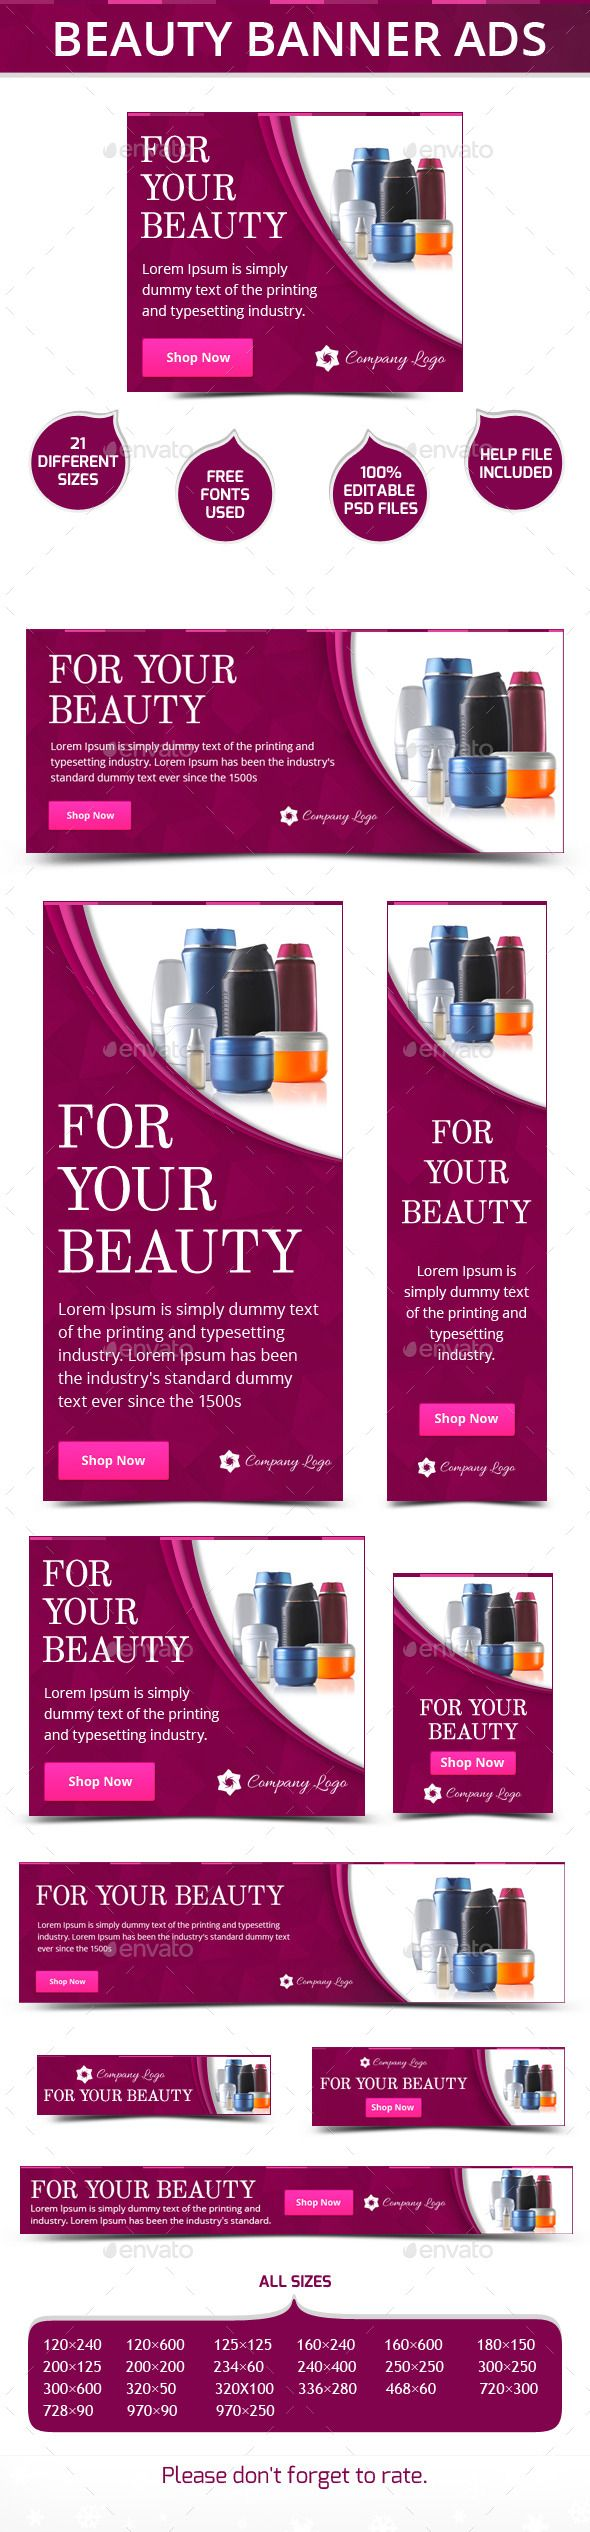 Beauty Banner Ads Template PSD   Buy and Download: http://graphicriver.net/item/beauty-banner-ads/9932525?ref=ksioks